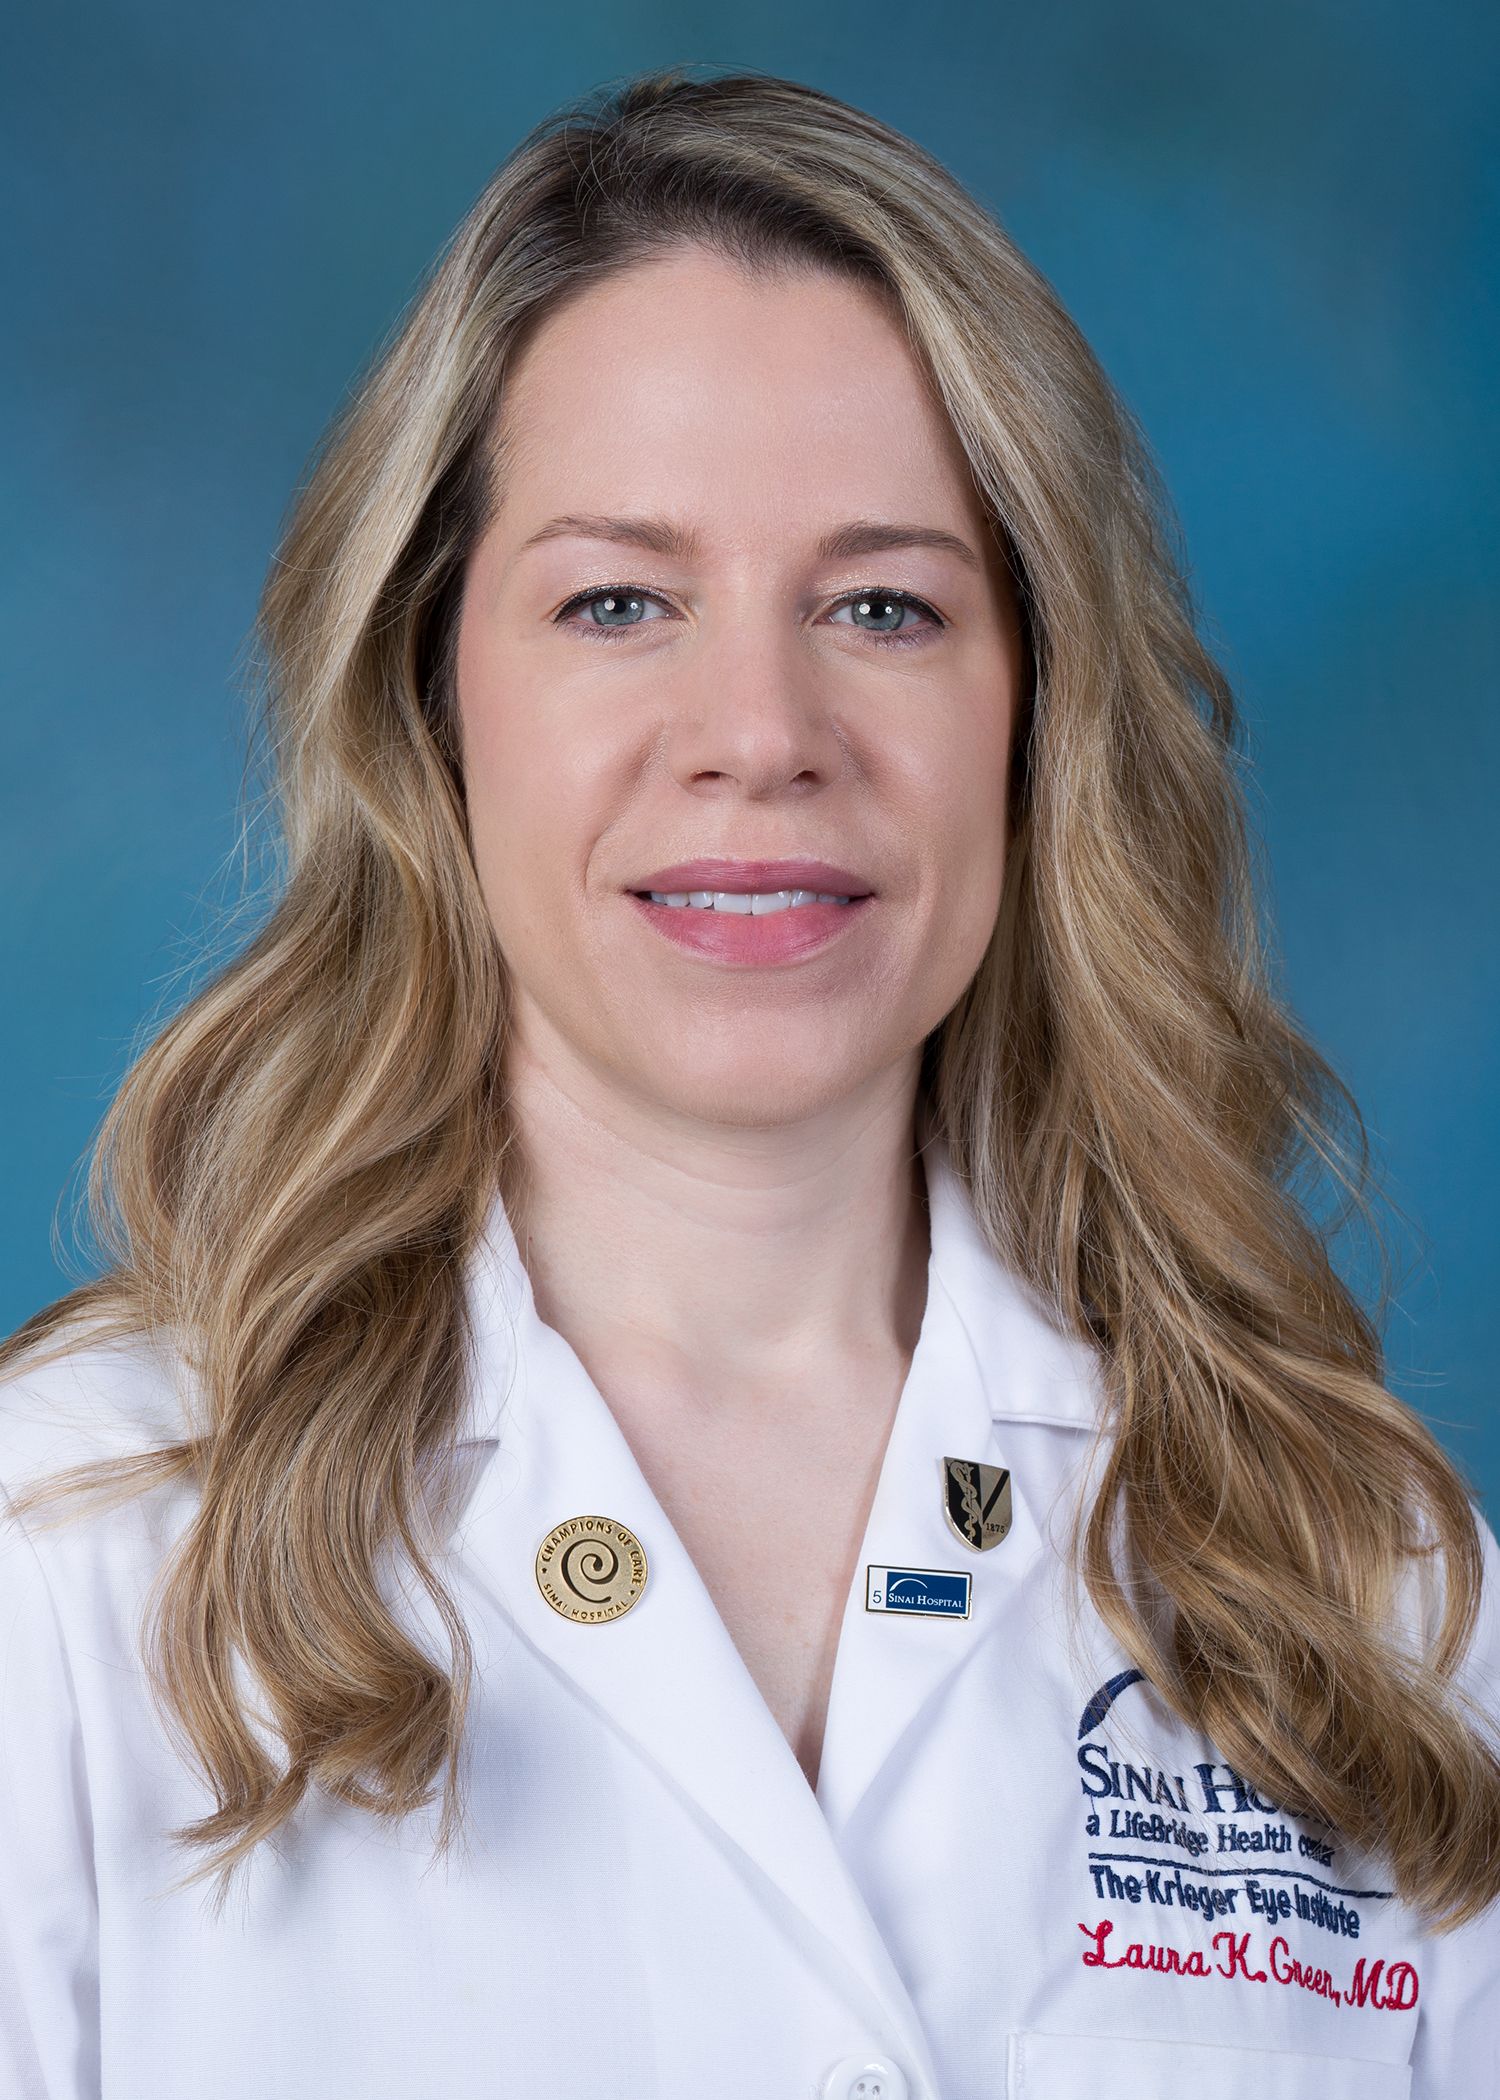 Laura Green, MD